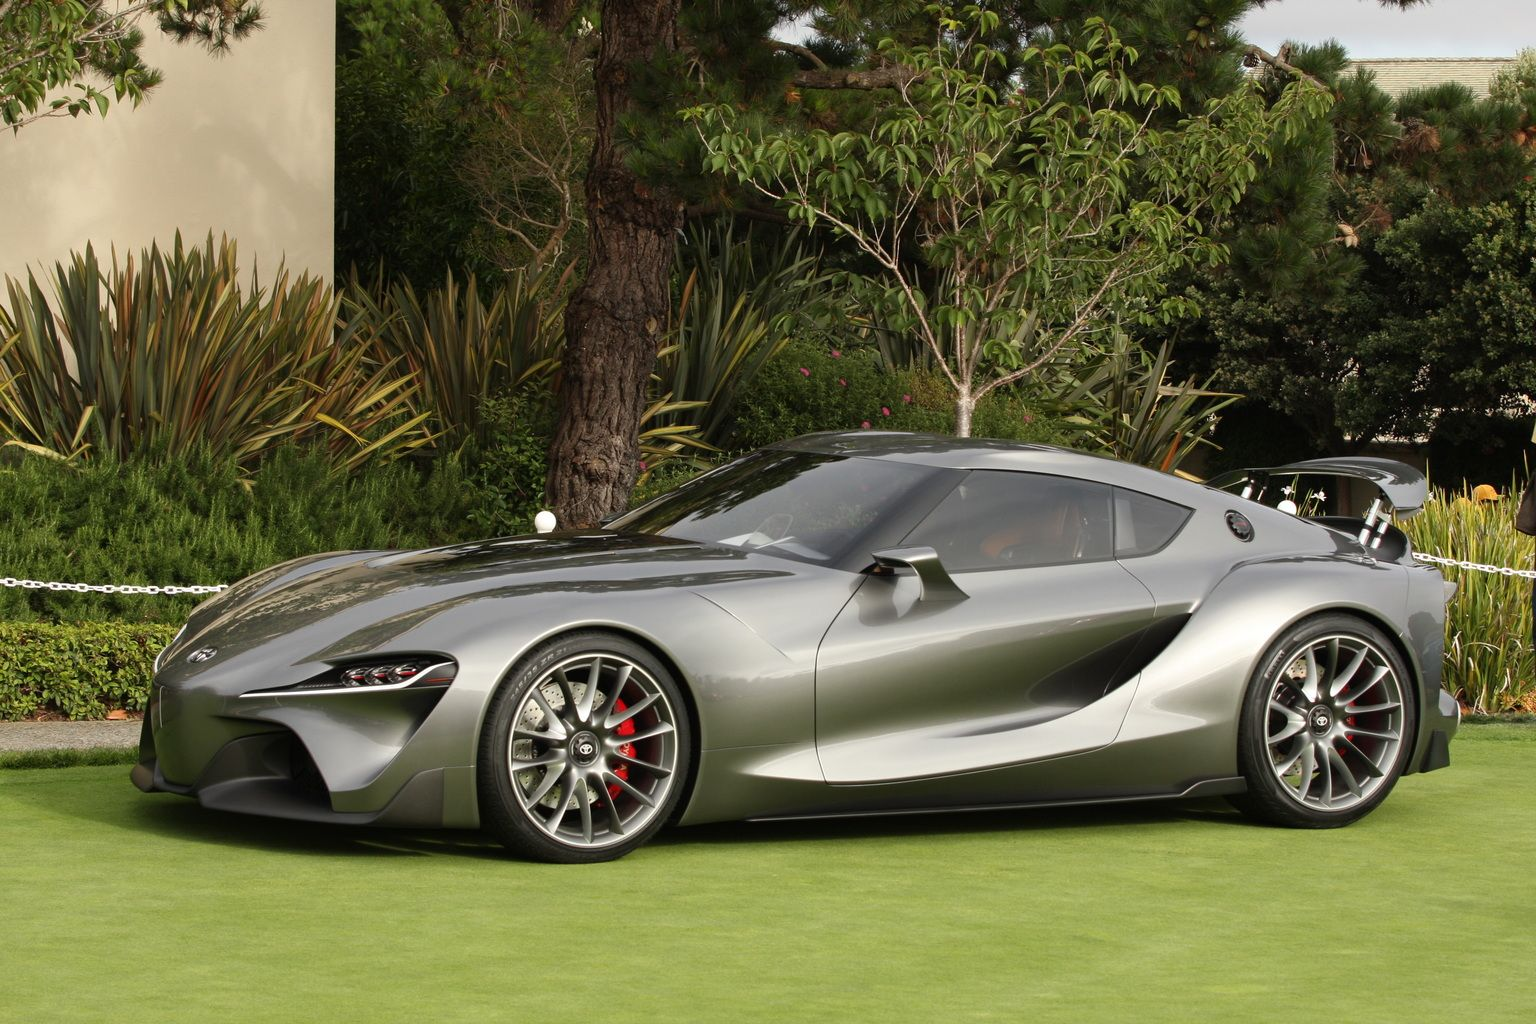 Toyota FT Fast And Furious Pinterest Toyota And Cars - Toyota ft1 price estimate